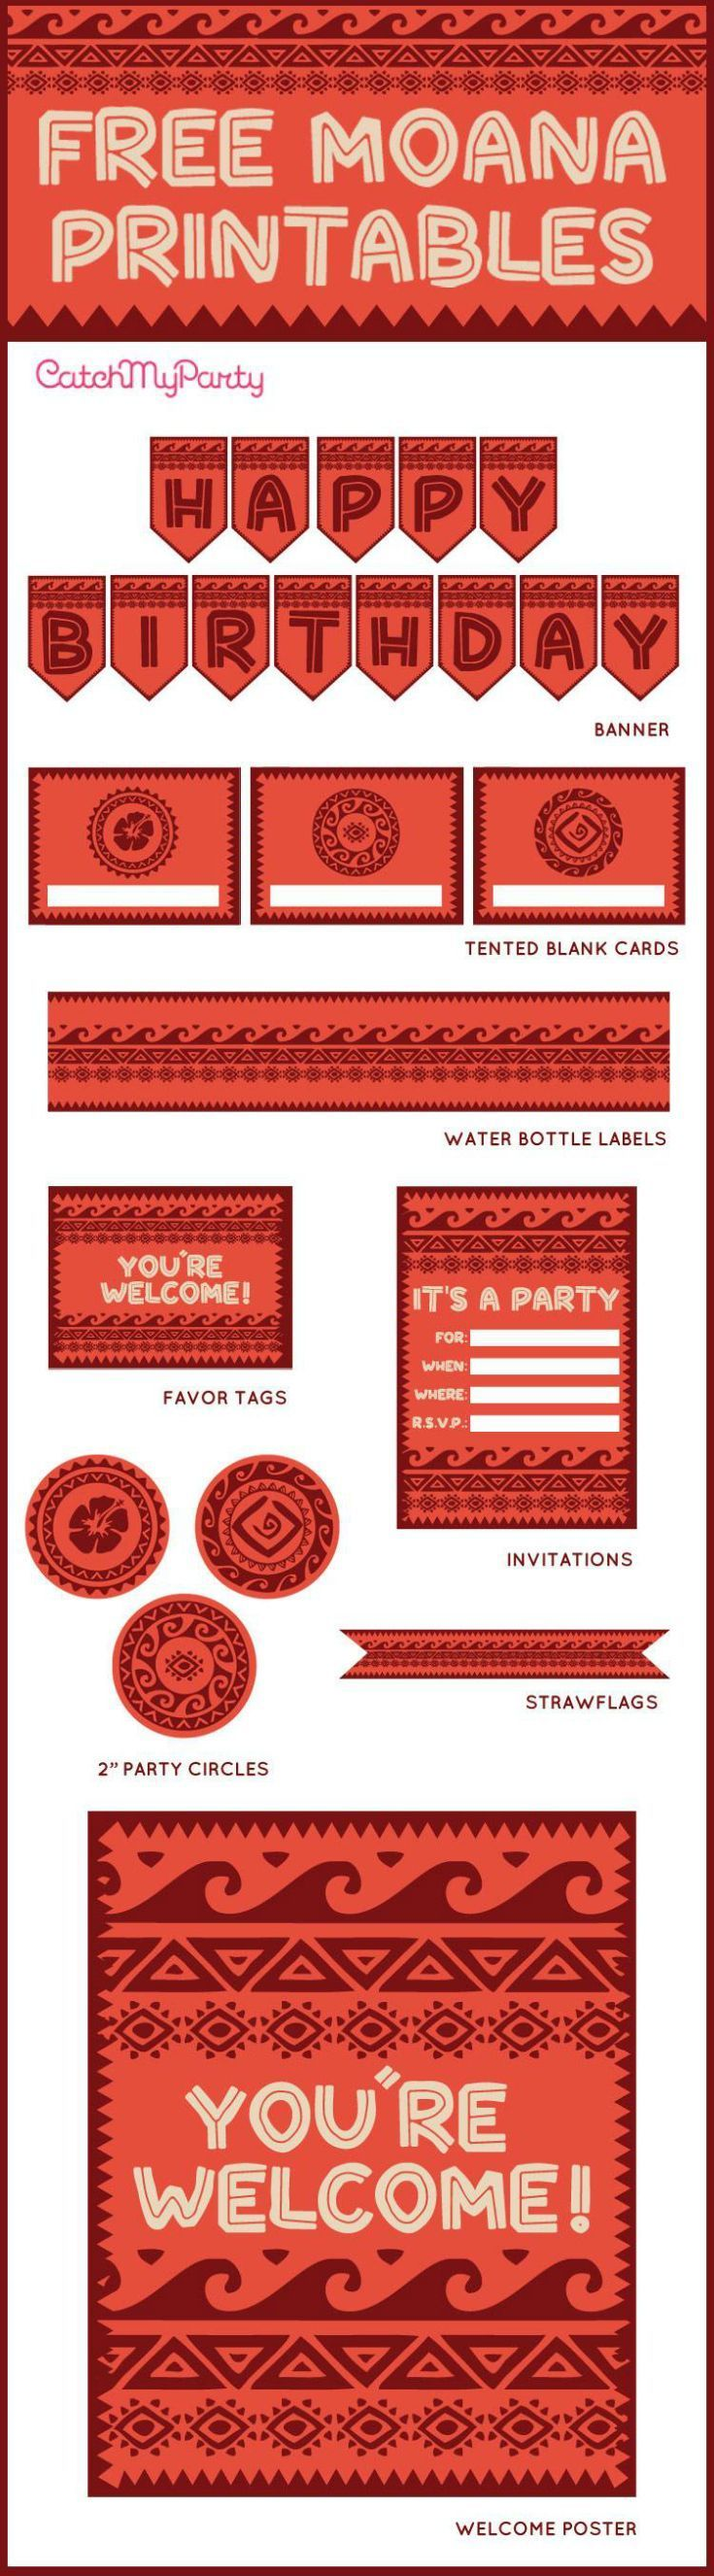 Free Moana printables to use for your birthday party. The collection ...